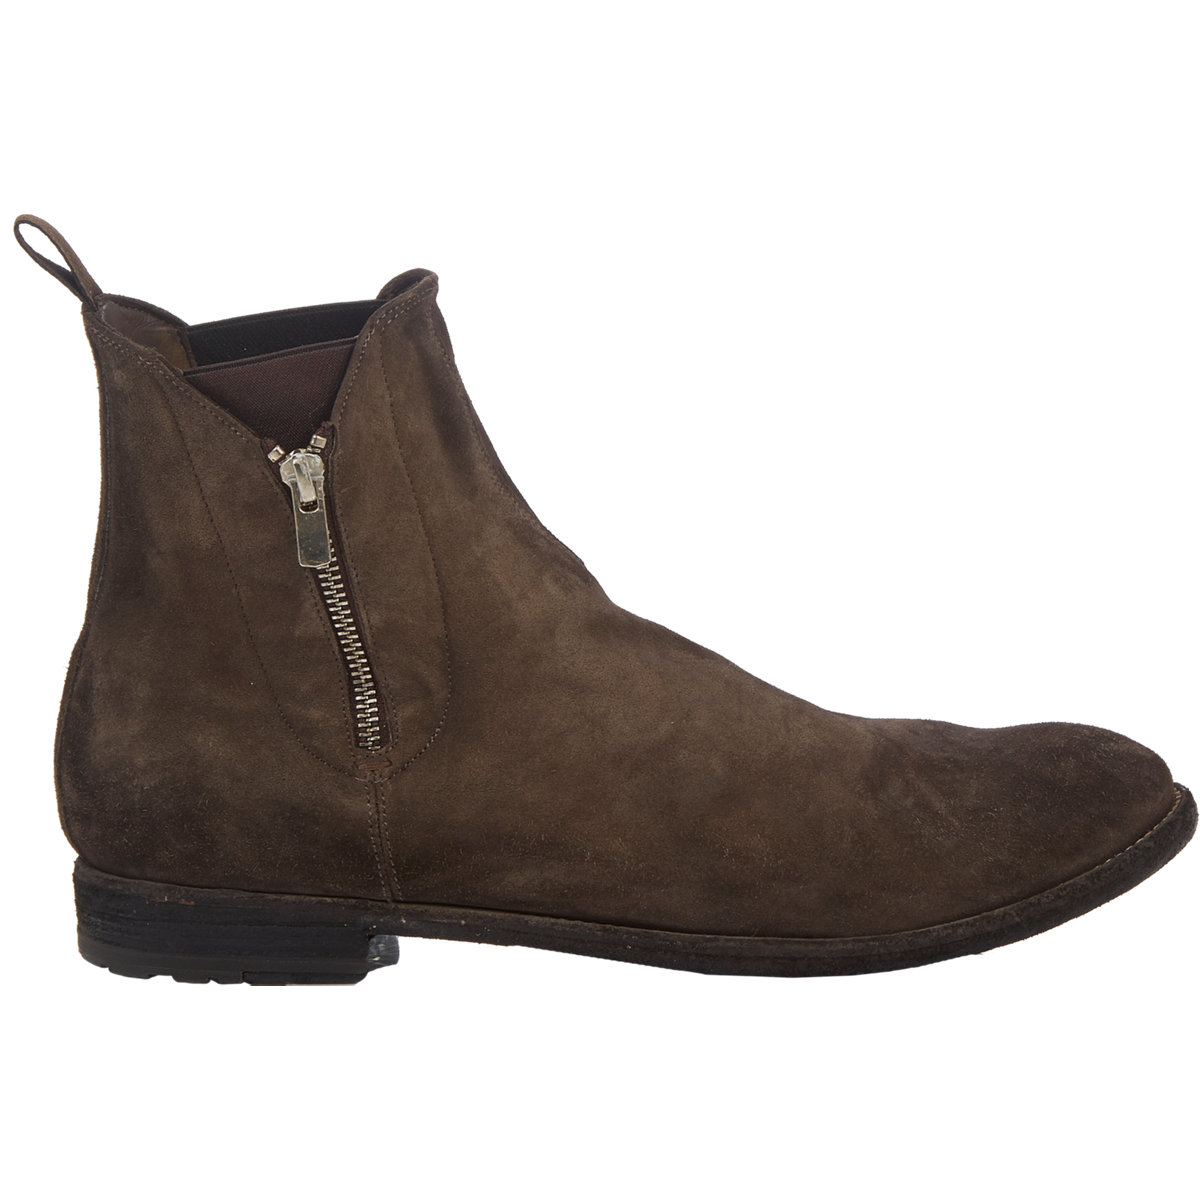 officine creative double zip chelsea boots in brown for. Black Bedroom Furniture Sets. Home Design Ideas